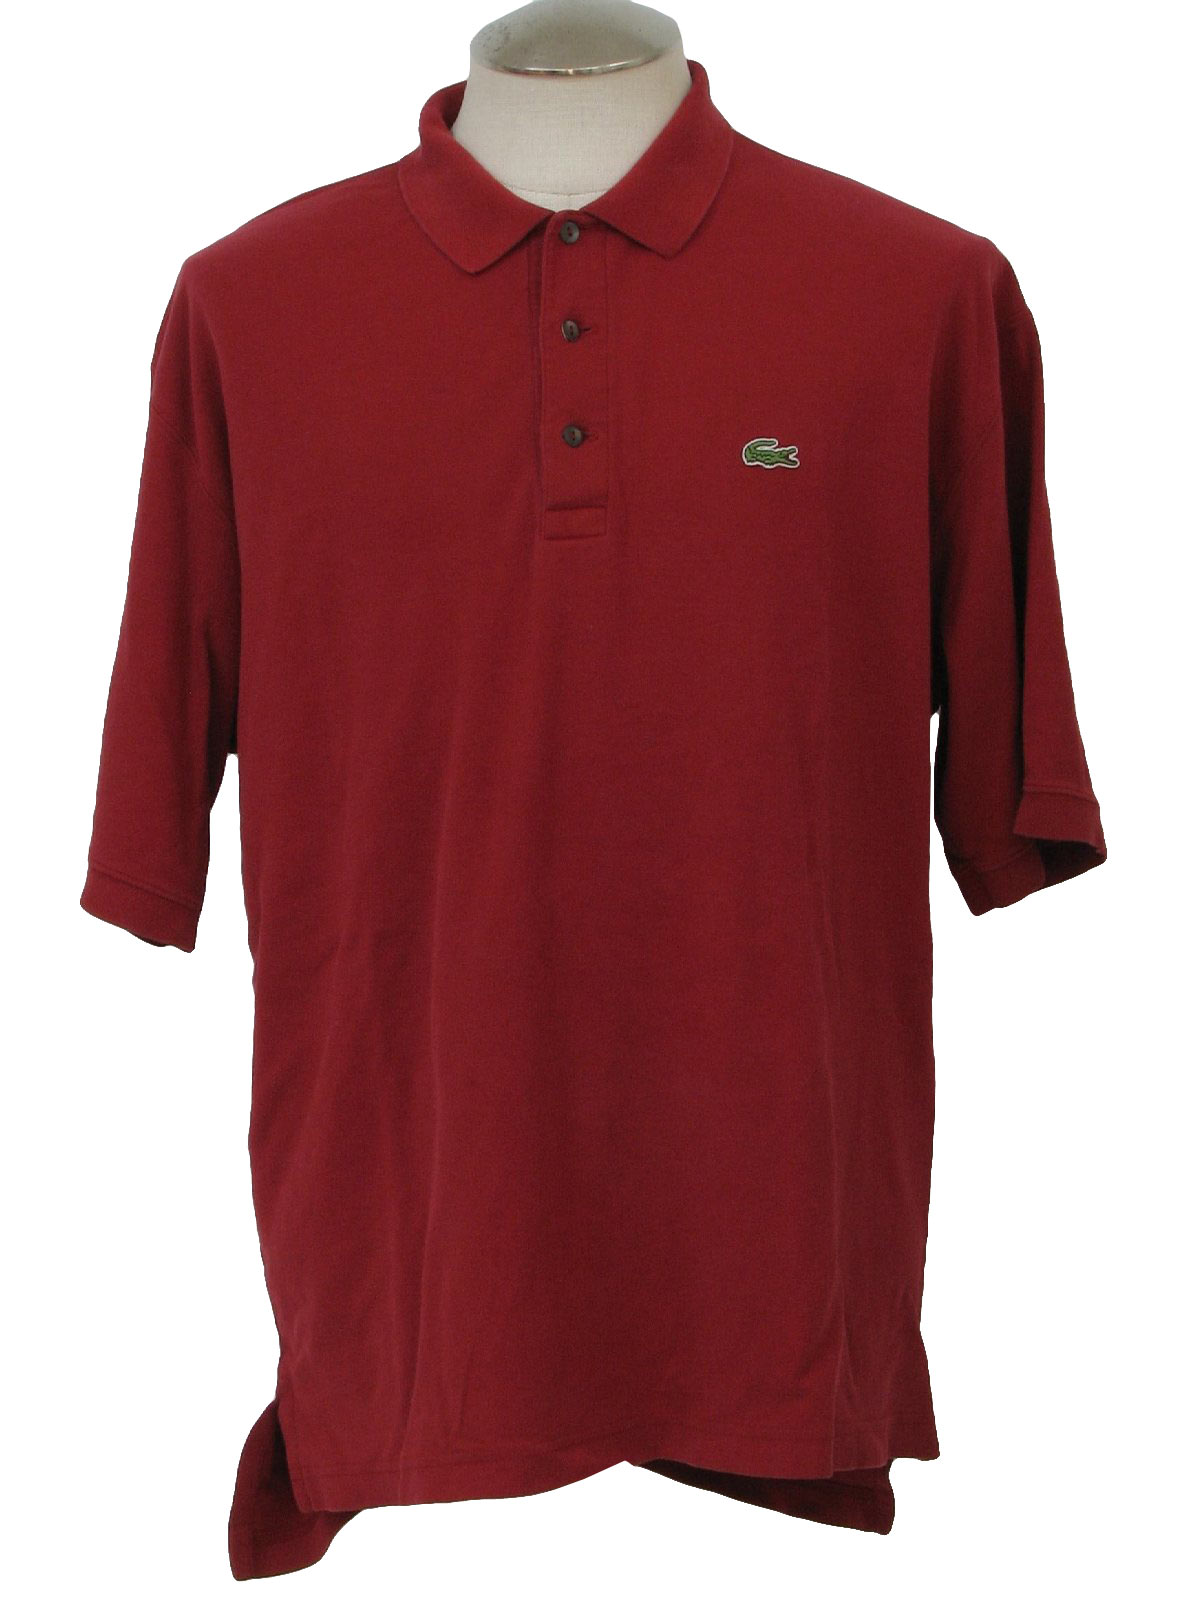 Retro 1990s shirt 80s lacoste mens dark red cotton for Lacoste shirts with big alligator